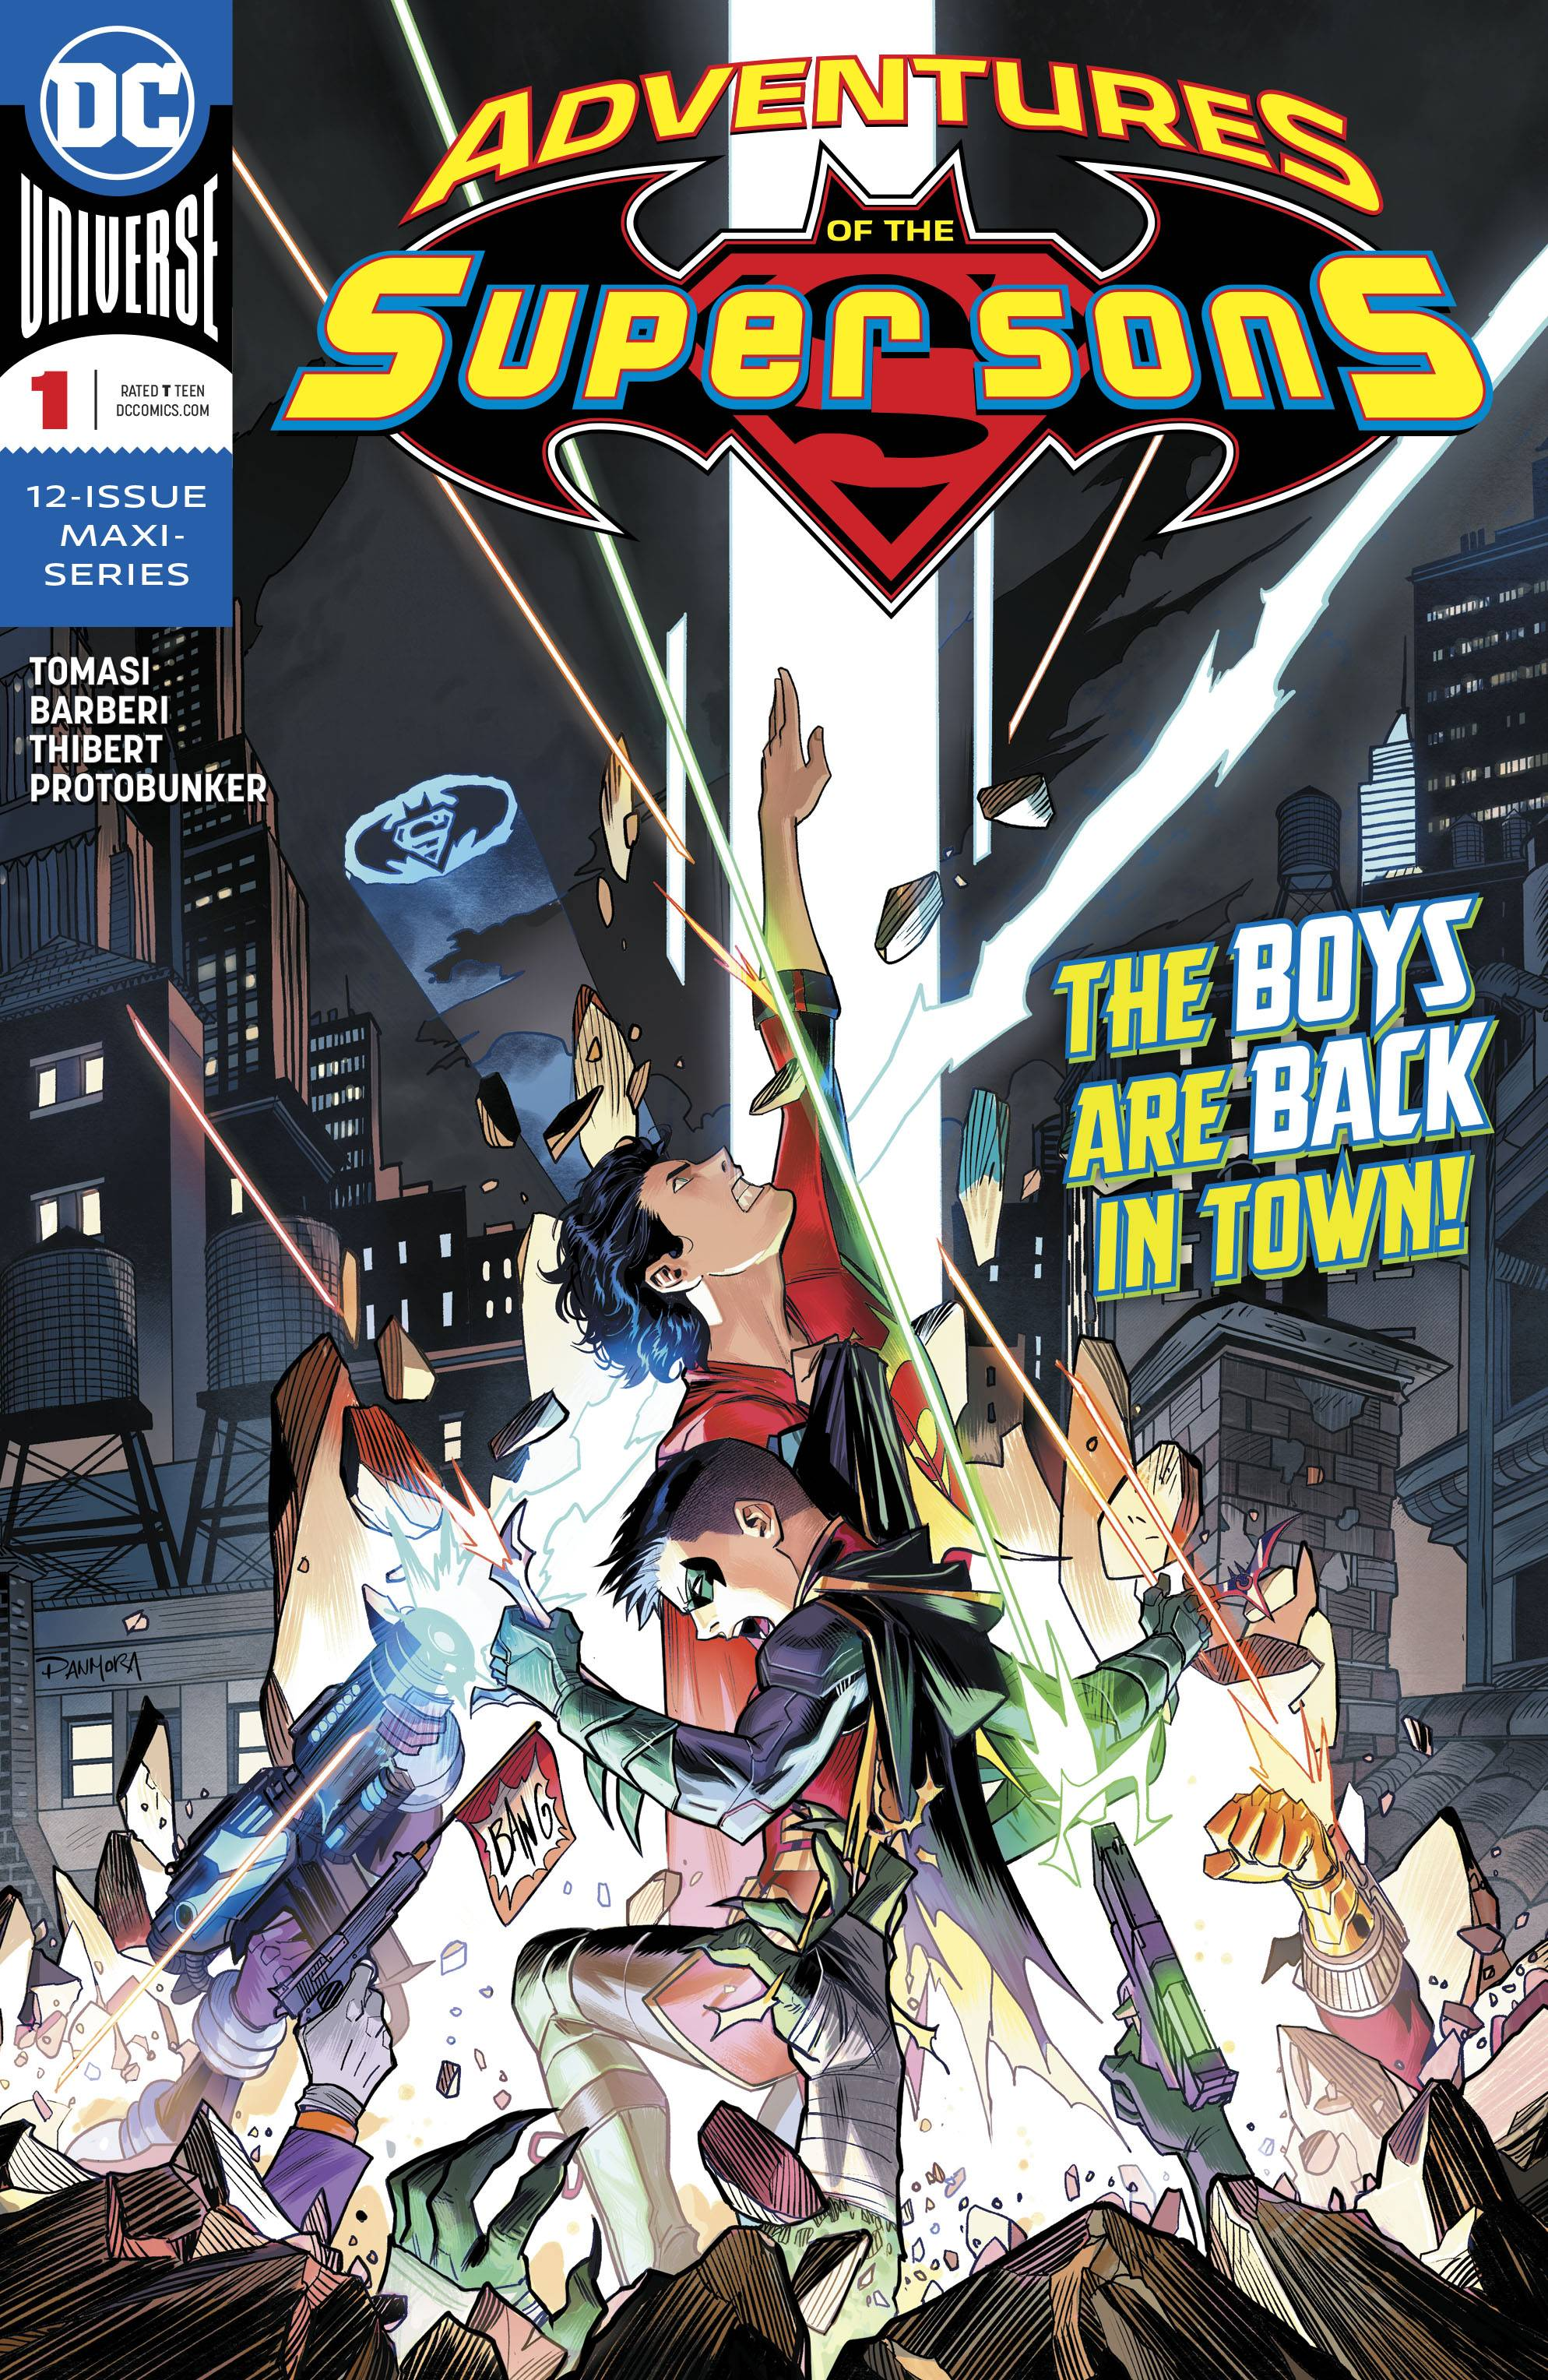 Adventures of the Super Sons #1 (of 12) - Trish's Pick Part IIWriter: Peter J. TomasiArtist: Carlo BarberiInker: Art ThibertColorist: ProtobunkerLetterer: Rob LeighI bet no one saw this coming, but I'm here to tell you all about my new favorite book, Adventures of the Super Sons. Continuing the journeys of Superboy and Robin, Peter J. Tomasi is back with another wacky adventure in which the two boys find themselves face to face with a team of familiar yet entirely alien foes. With Carlo Barberi on pencils and Art Thibert inking, the art style is slightly different yet very reminiscent of the previous art with vastly fun and expressive faces. The boys' relationship has obviously progressed and shows that they've gotten closer as friends, but also maintains the very playful and hilarious banter that made the first series so great.